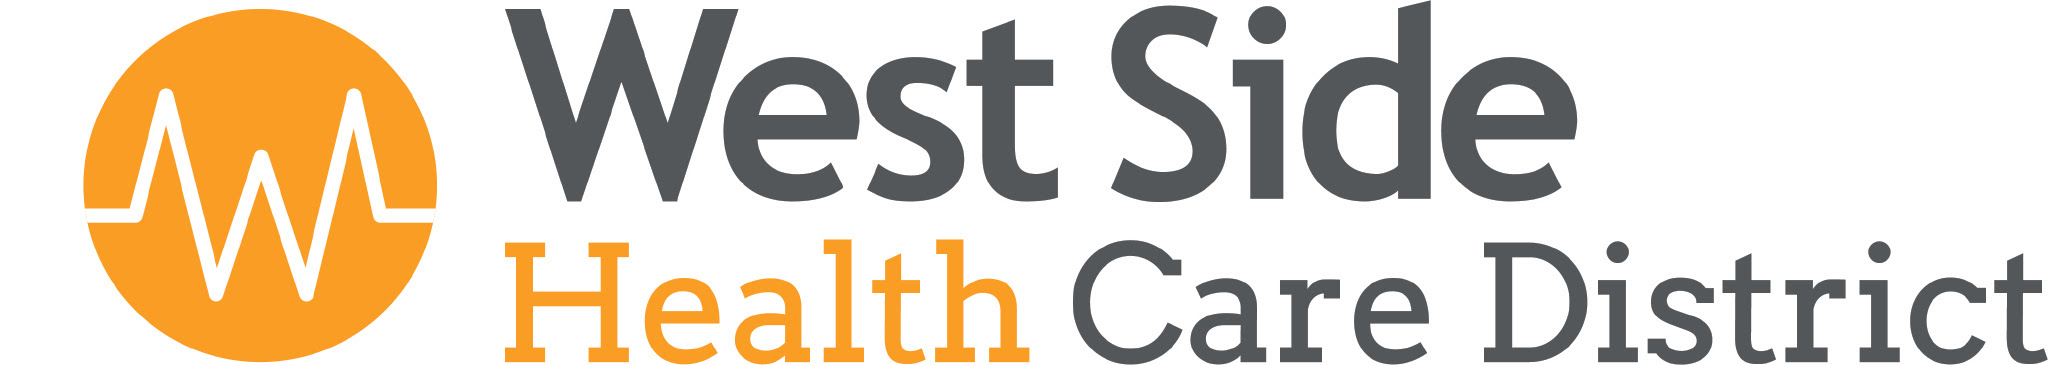 West Side Health Care District